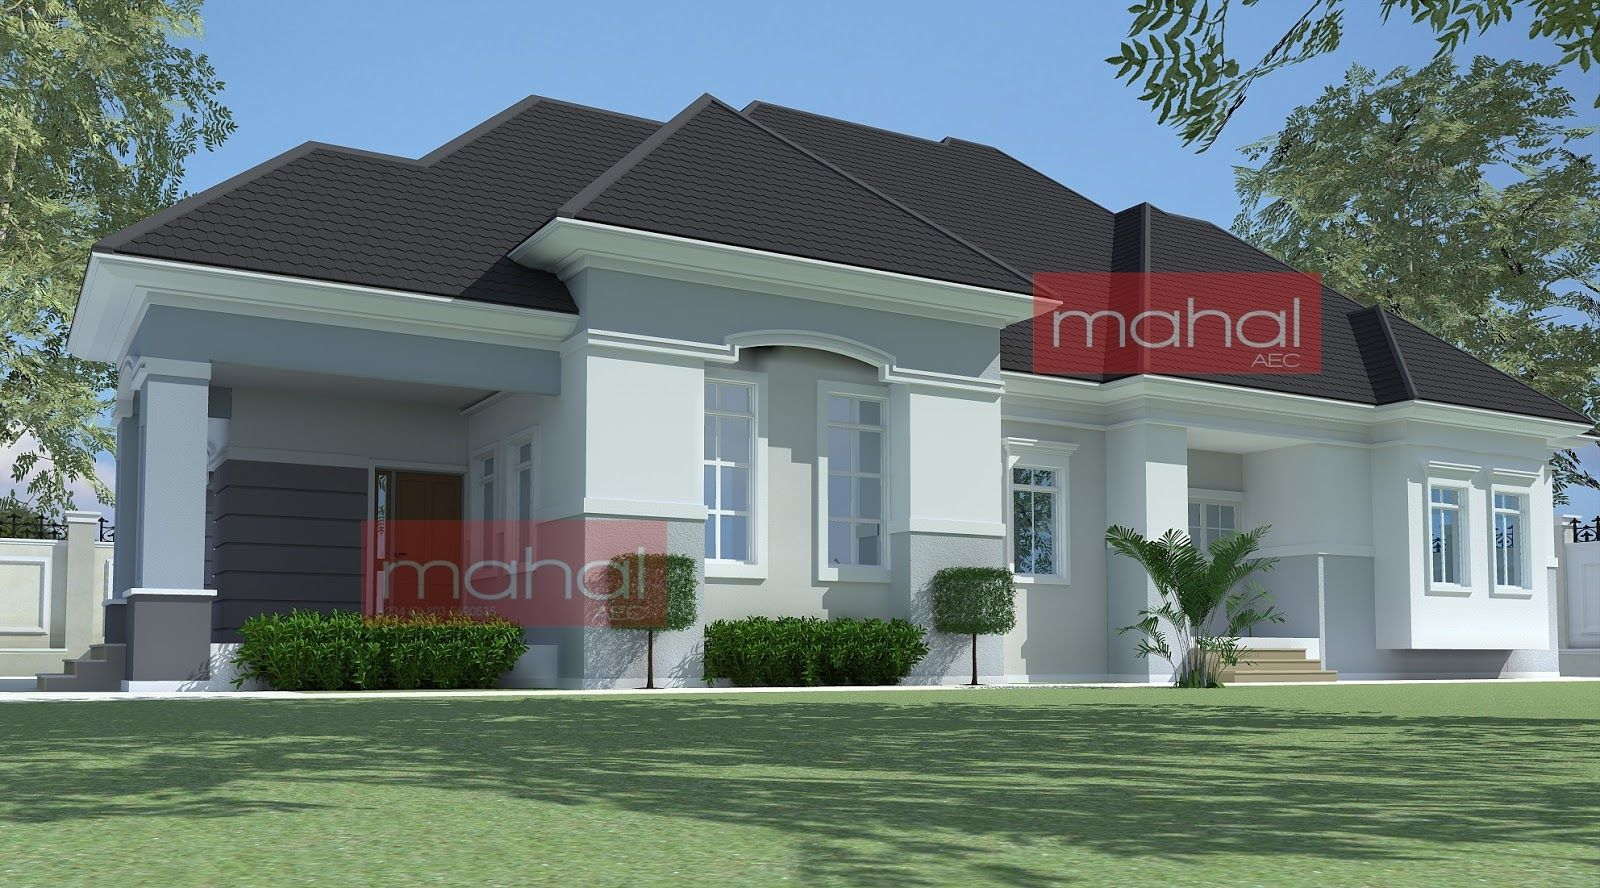 4 bedroom bungalow plan in nigeria 4 bedroom bungalow for Beautiful house designs in nigeria